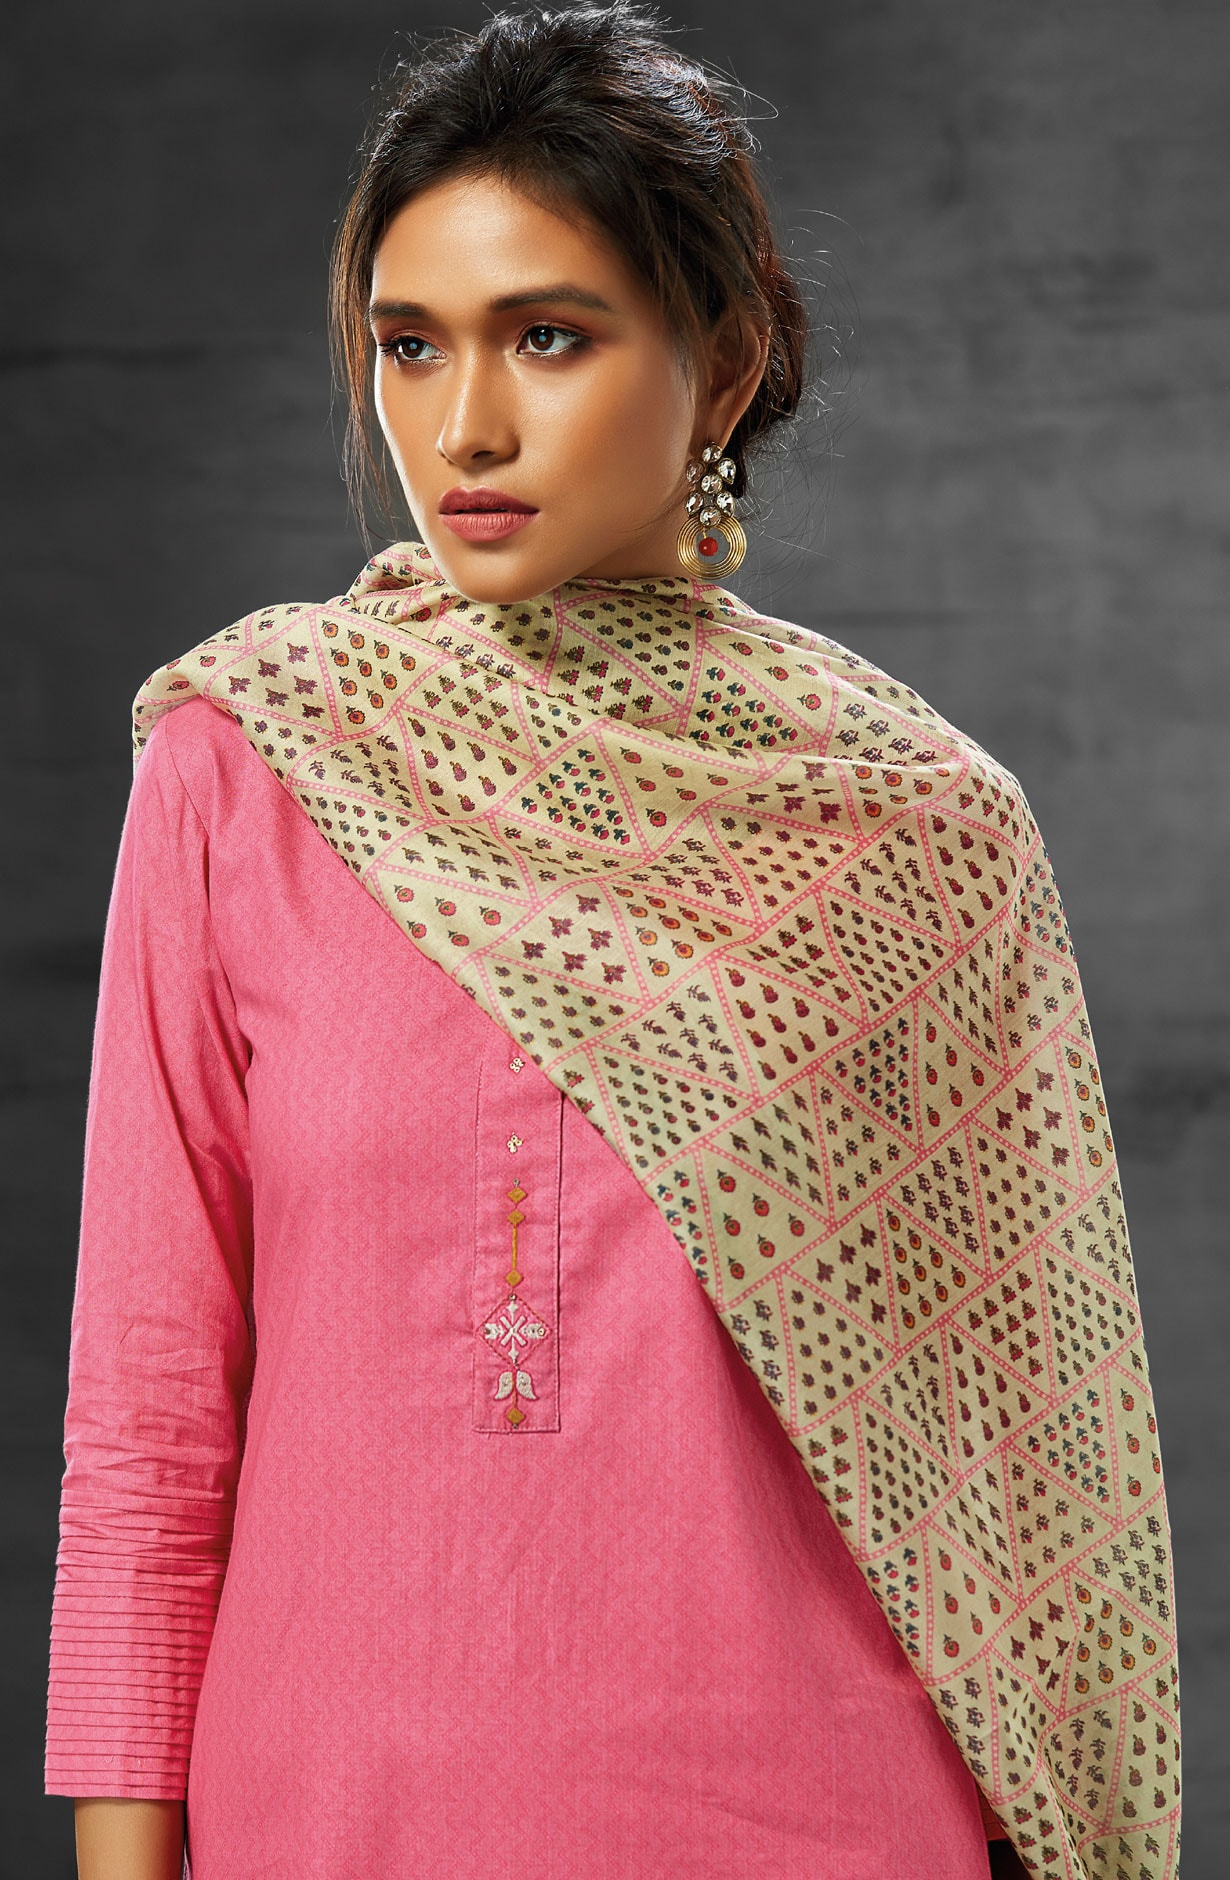 53acb5c1c2 Latest Summer Collection Digital Print Cotton Salwar Suit Sets In Pink -  AEO6217